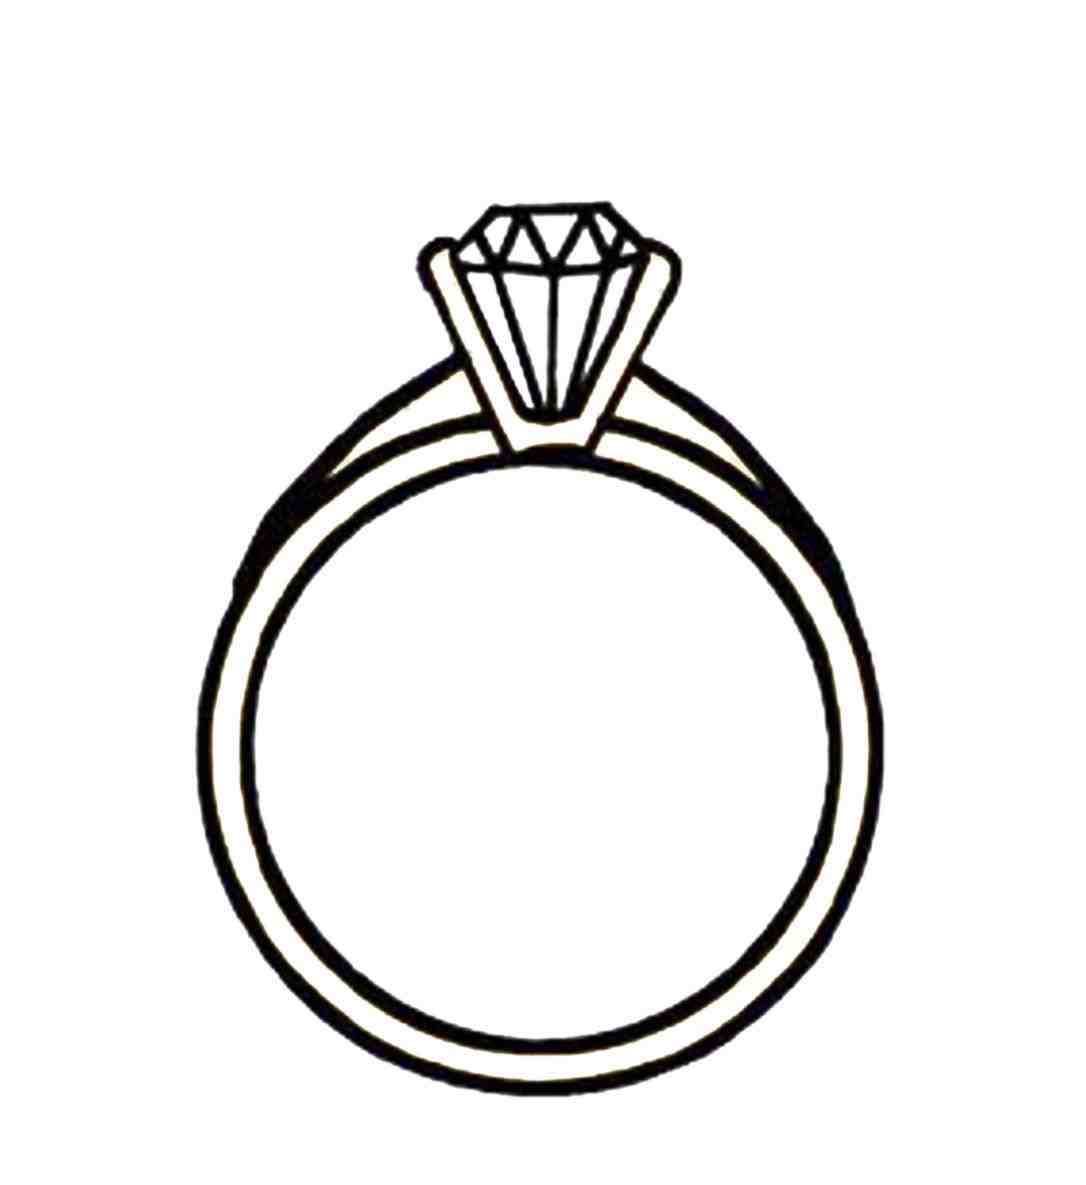 1086x1185 Free Silver Wedding Rings Clip Art Ring Image Pictures Th